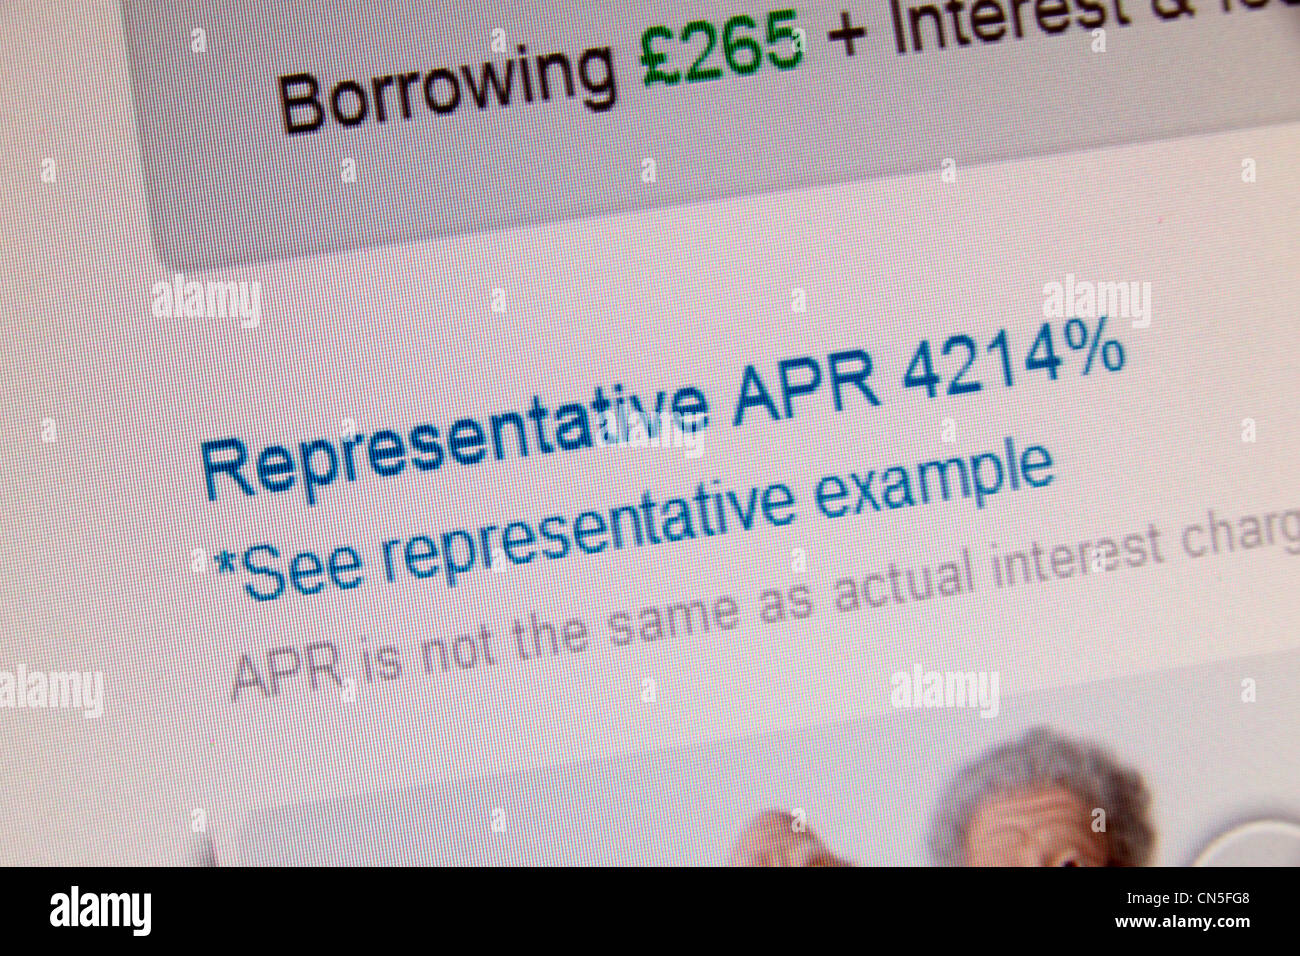 A screenshot of the Wonga.com web site showing a representative APR interest rate of 4214%. - Stock Image